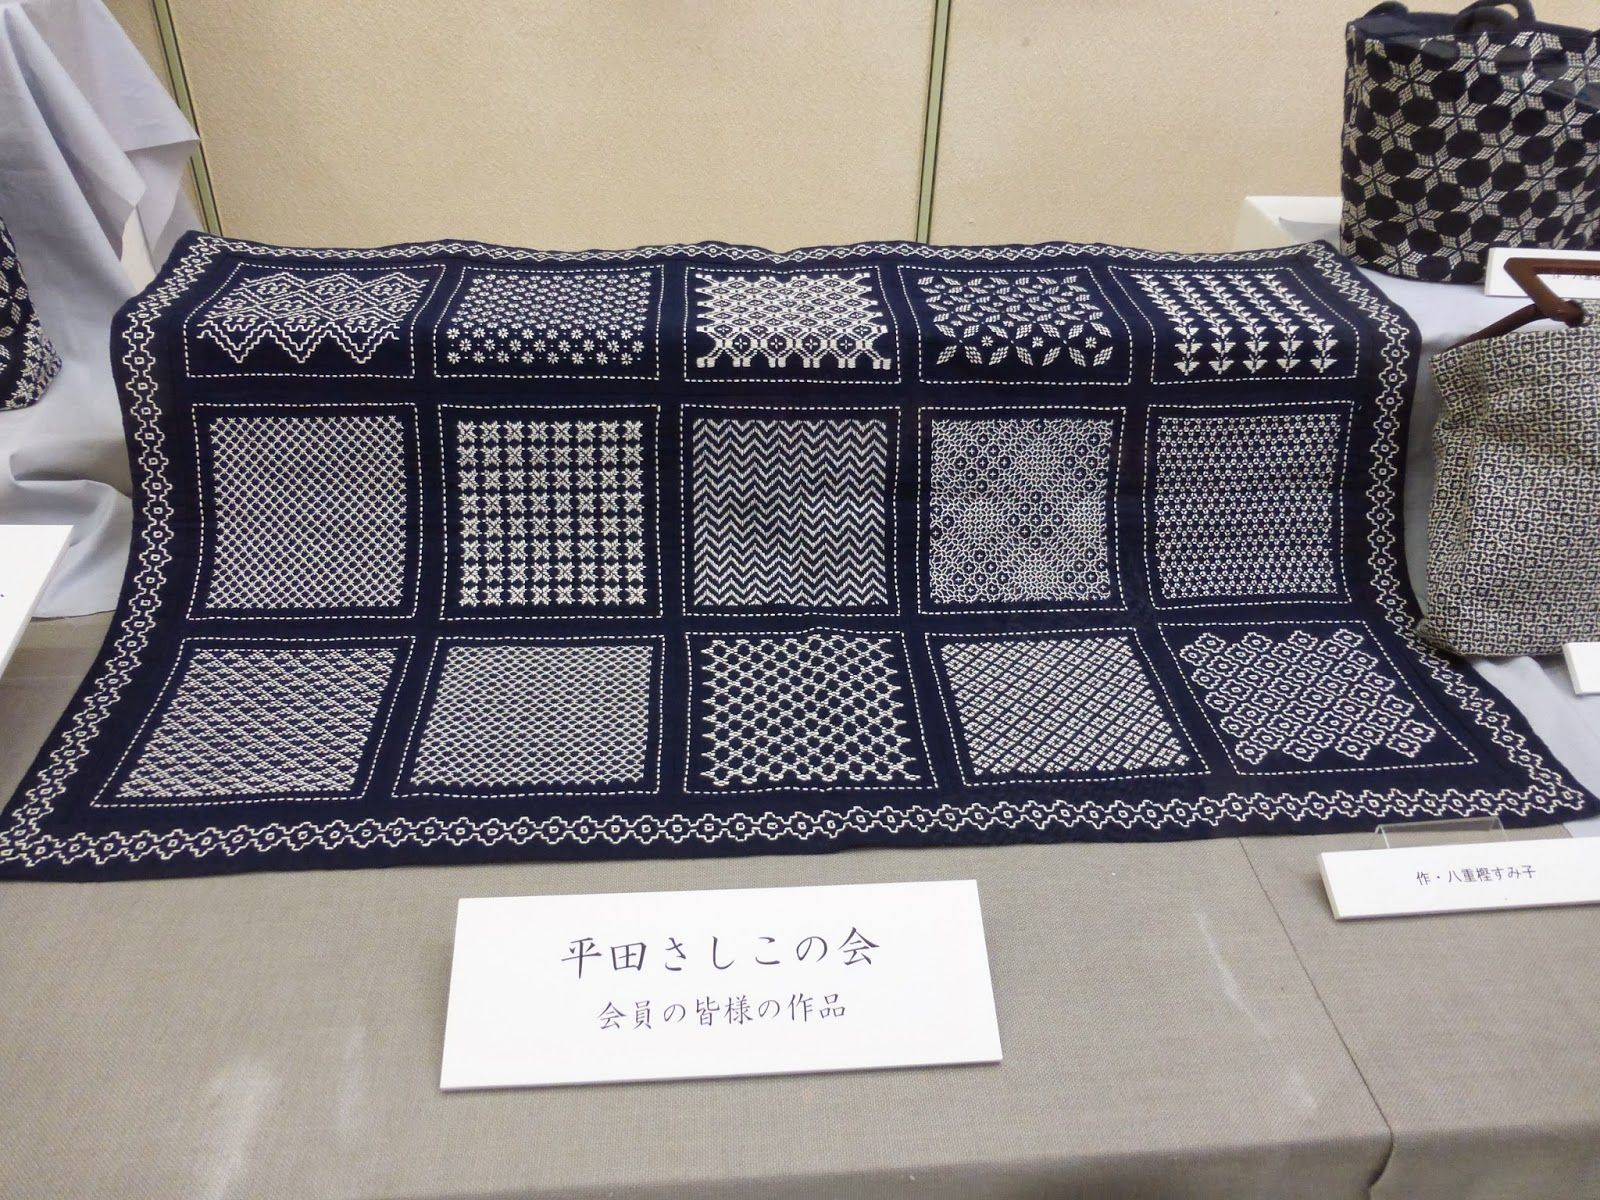 sashiko and other stitching: Yuza-machi visit part 3 - out and about in Sakata etc.